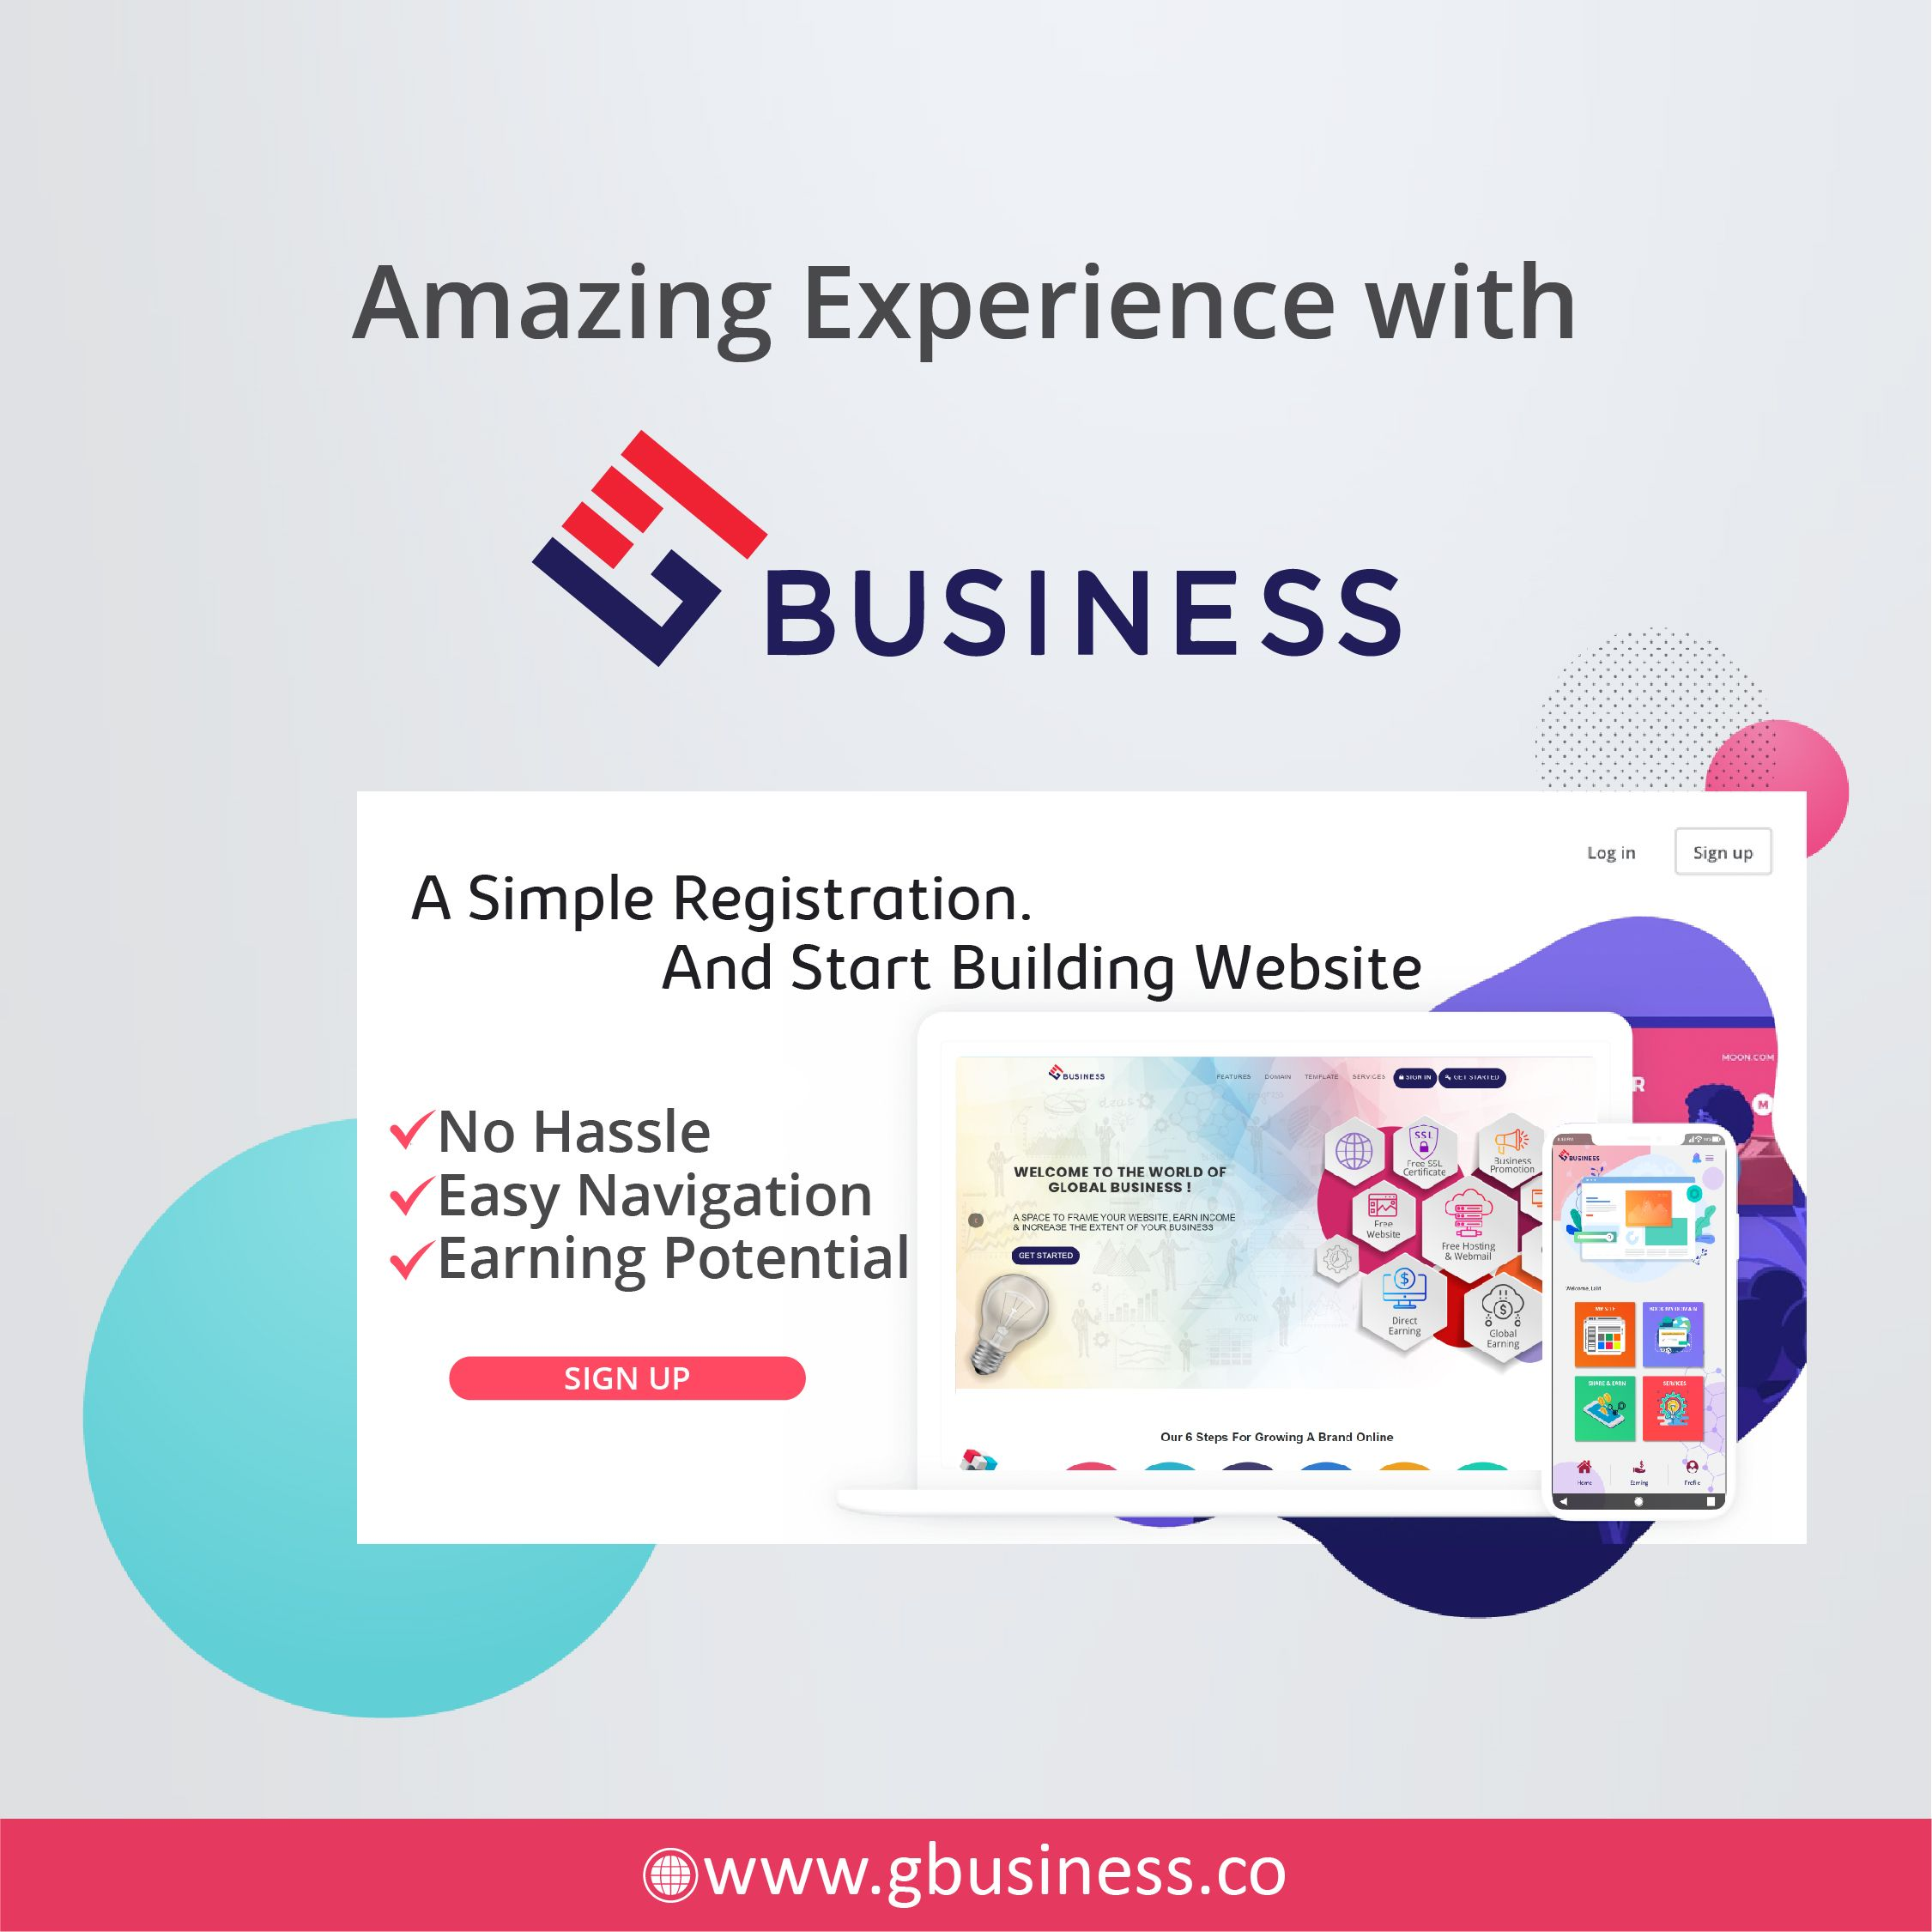 You Can Design Your Website Via Gbusiness Platform In The Easiest